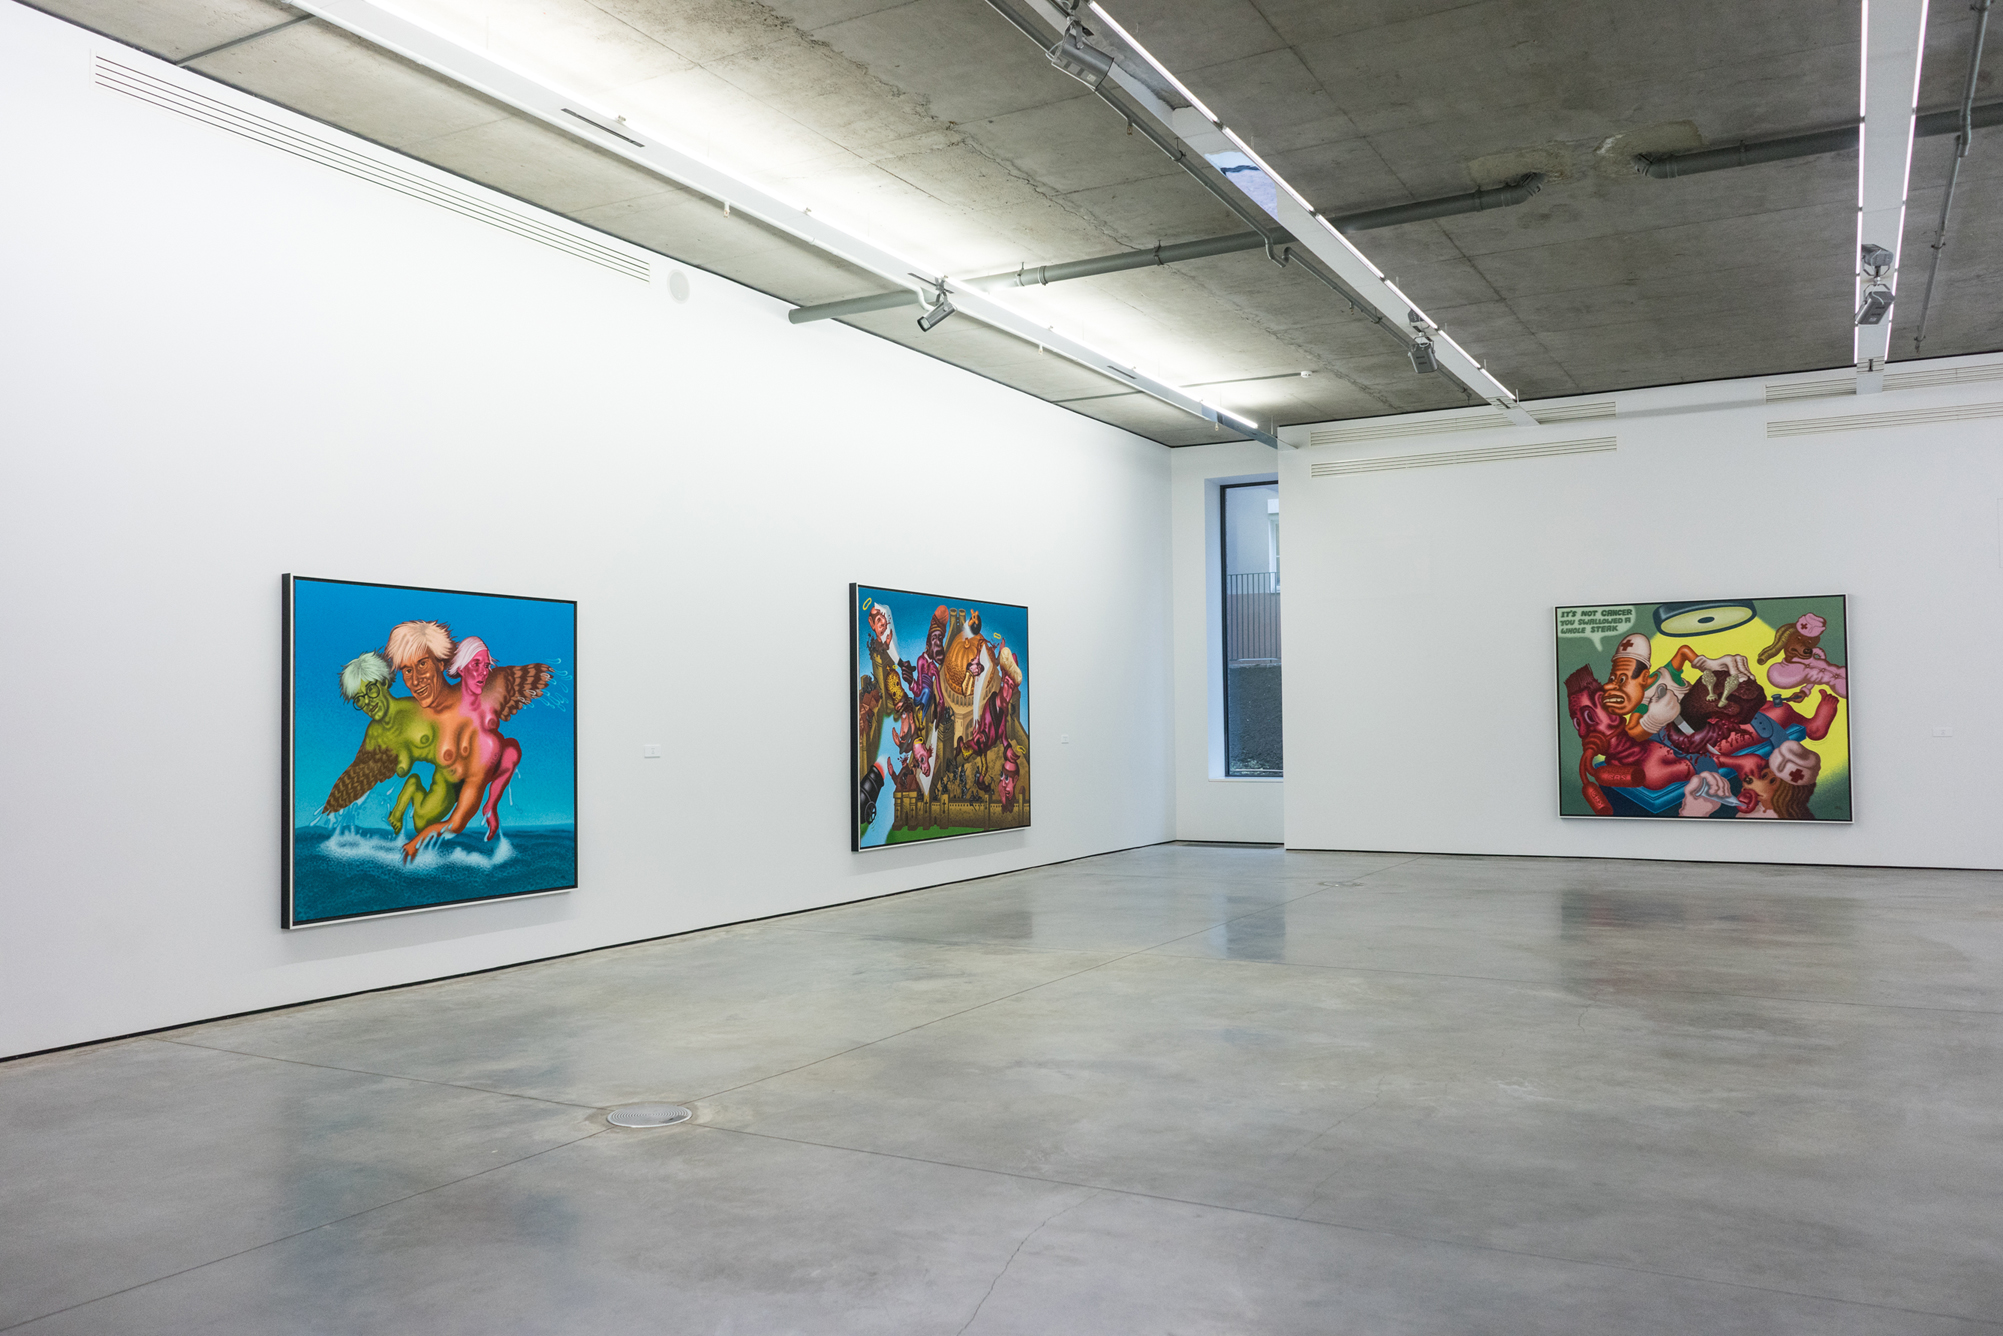 Peter Saul at Gary Tatintsian Gallery